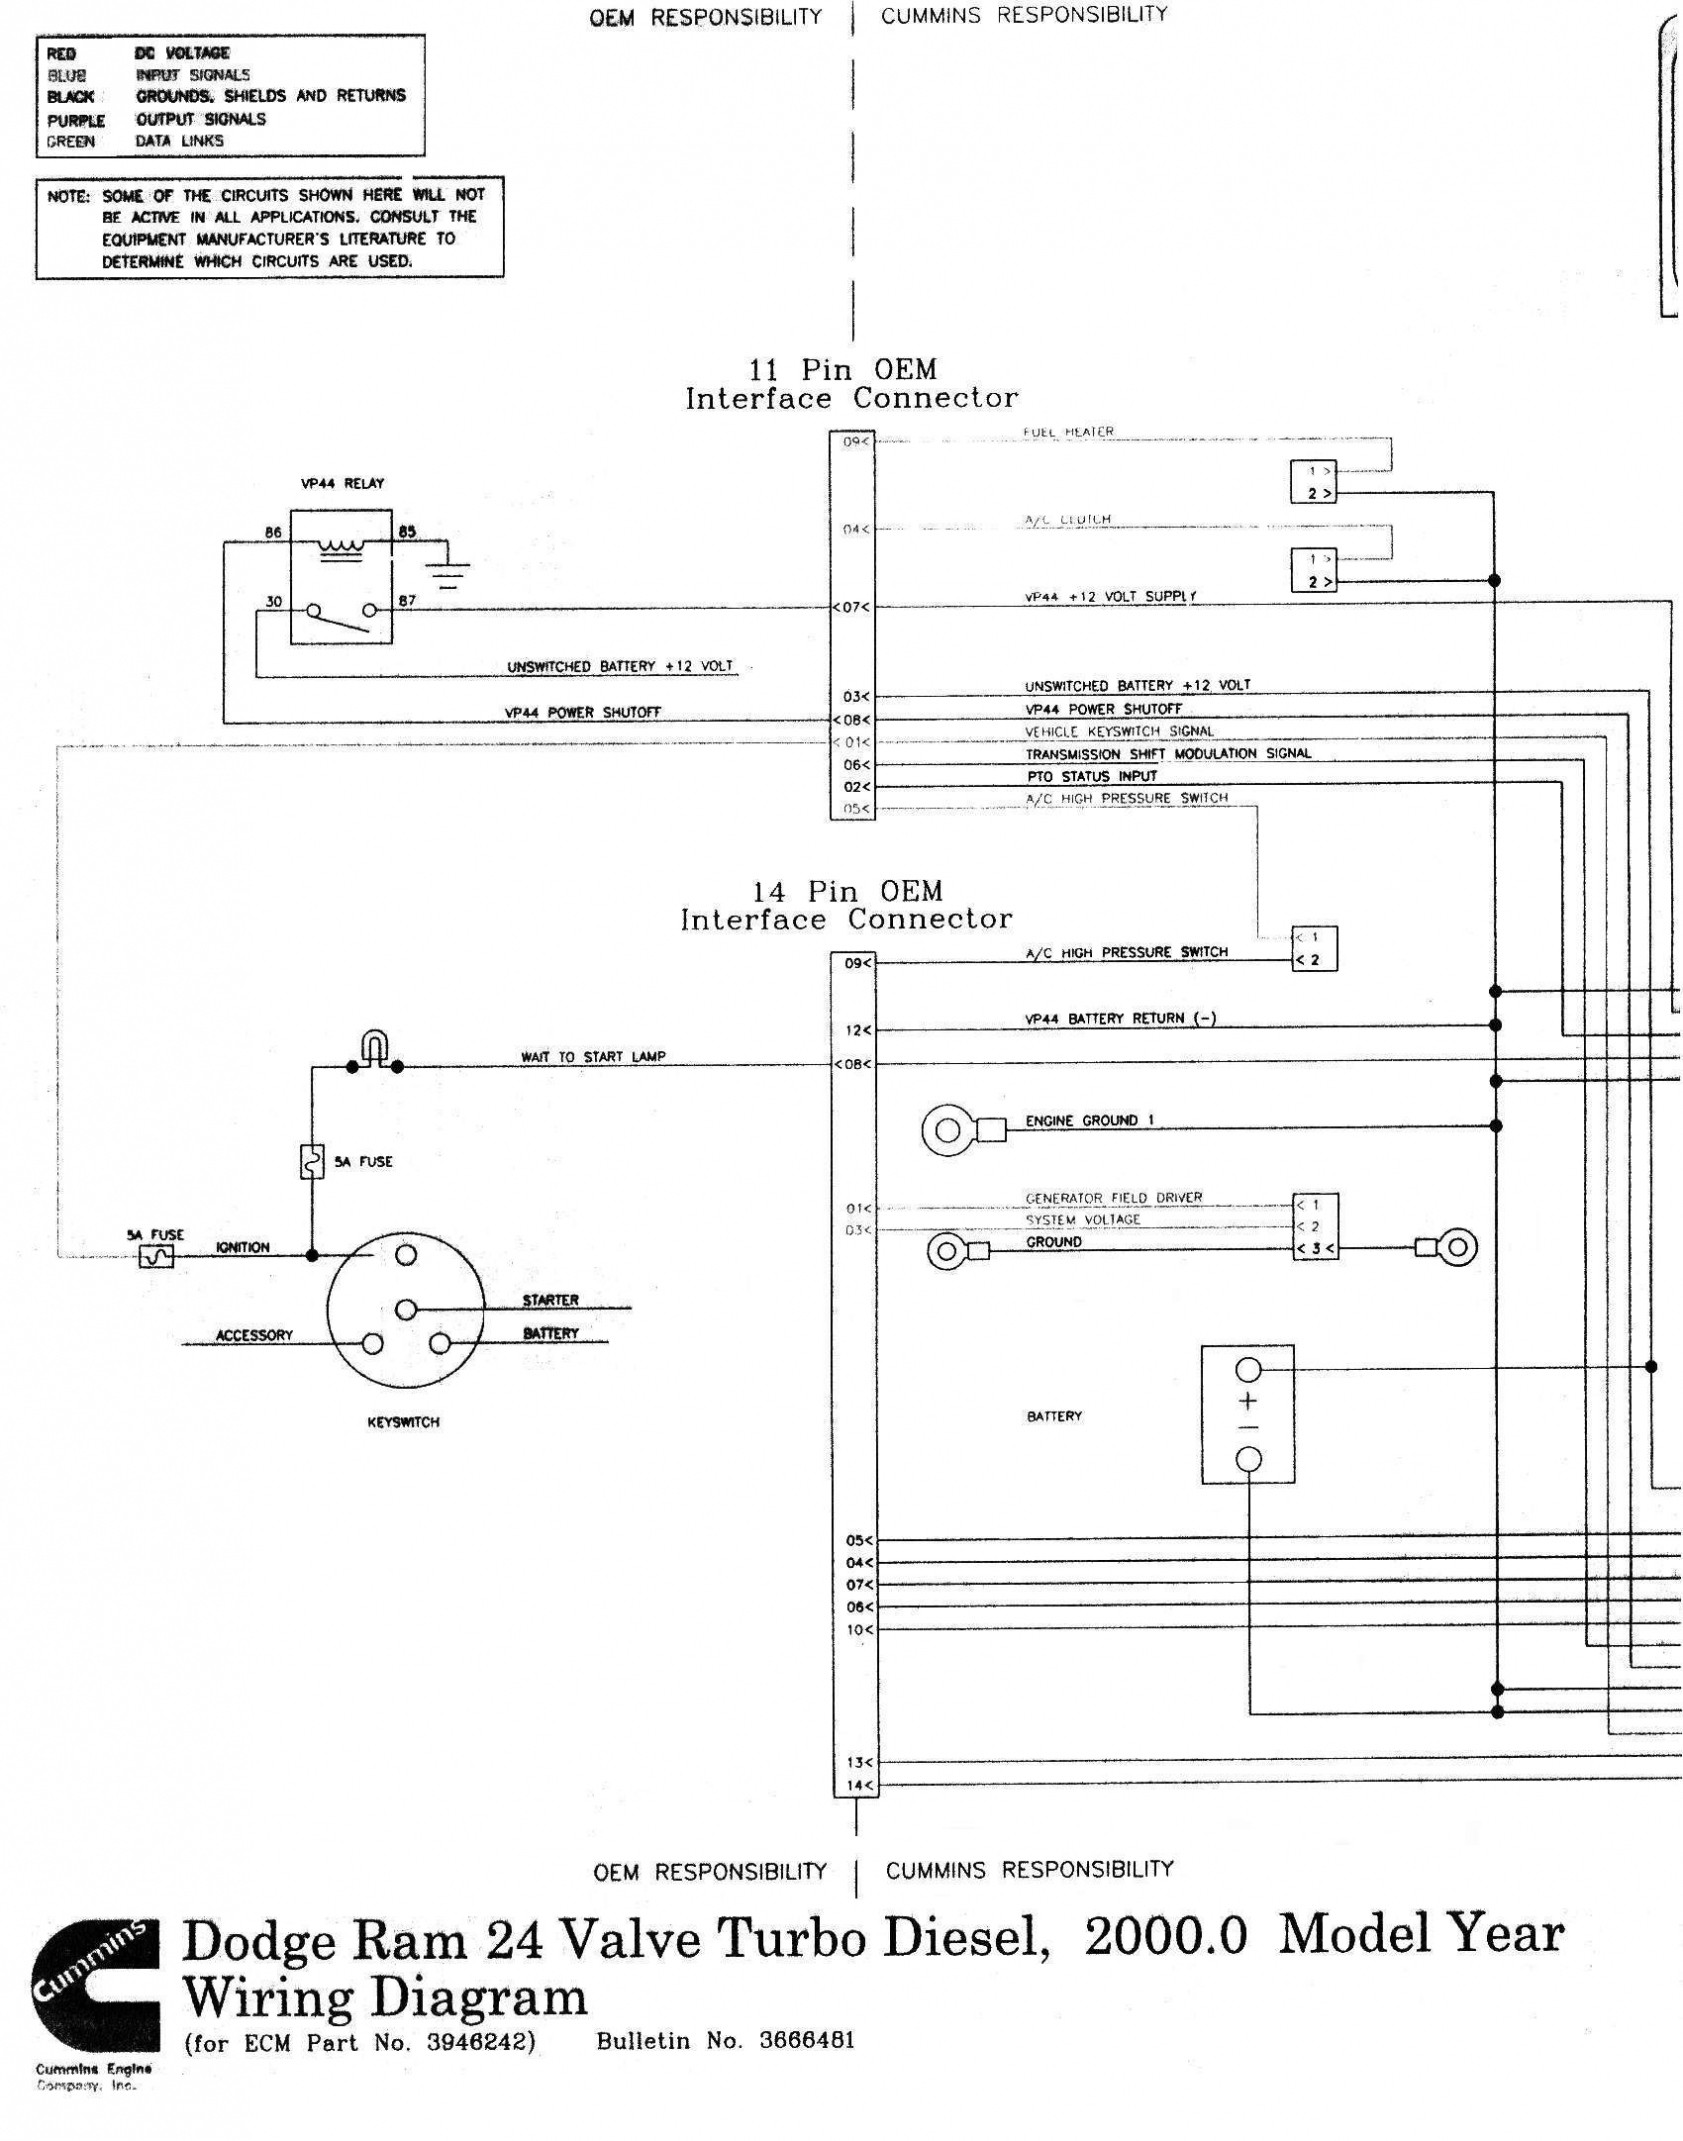 2002 Dodge Ram 1500 Wiring Diagram 2002 Dodge Ram 1500 Tail ... on